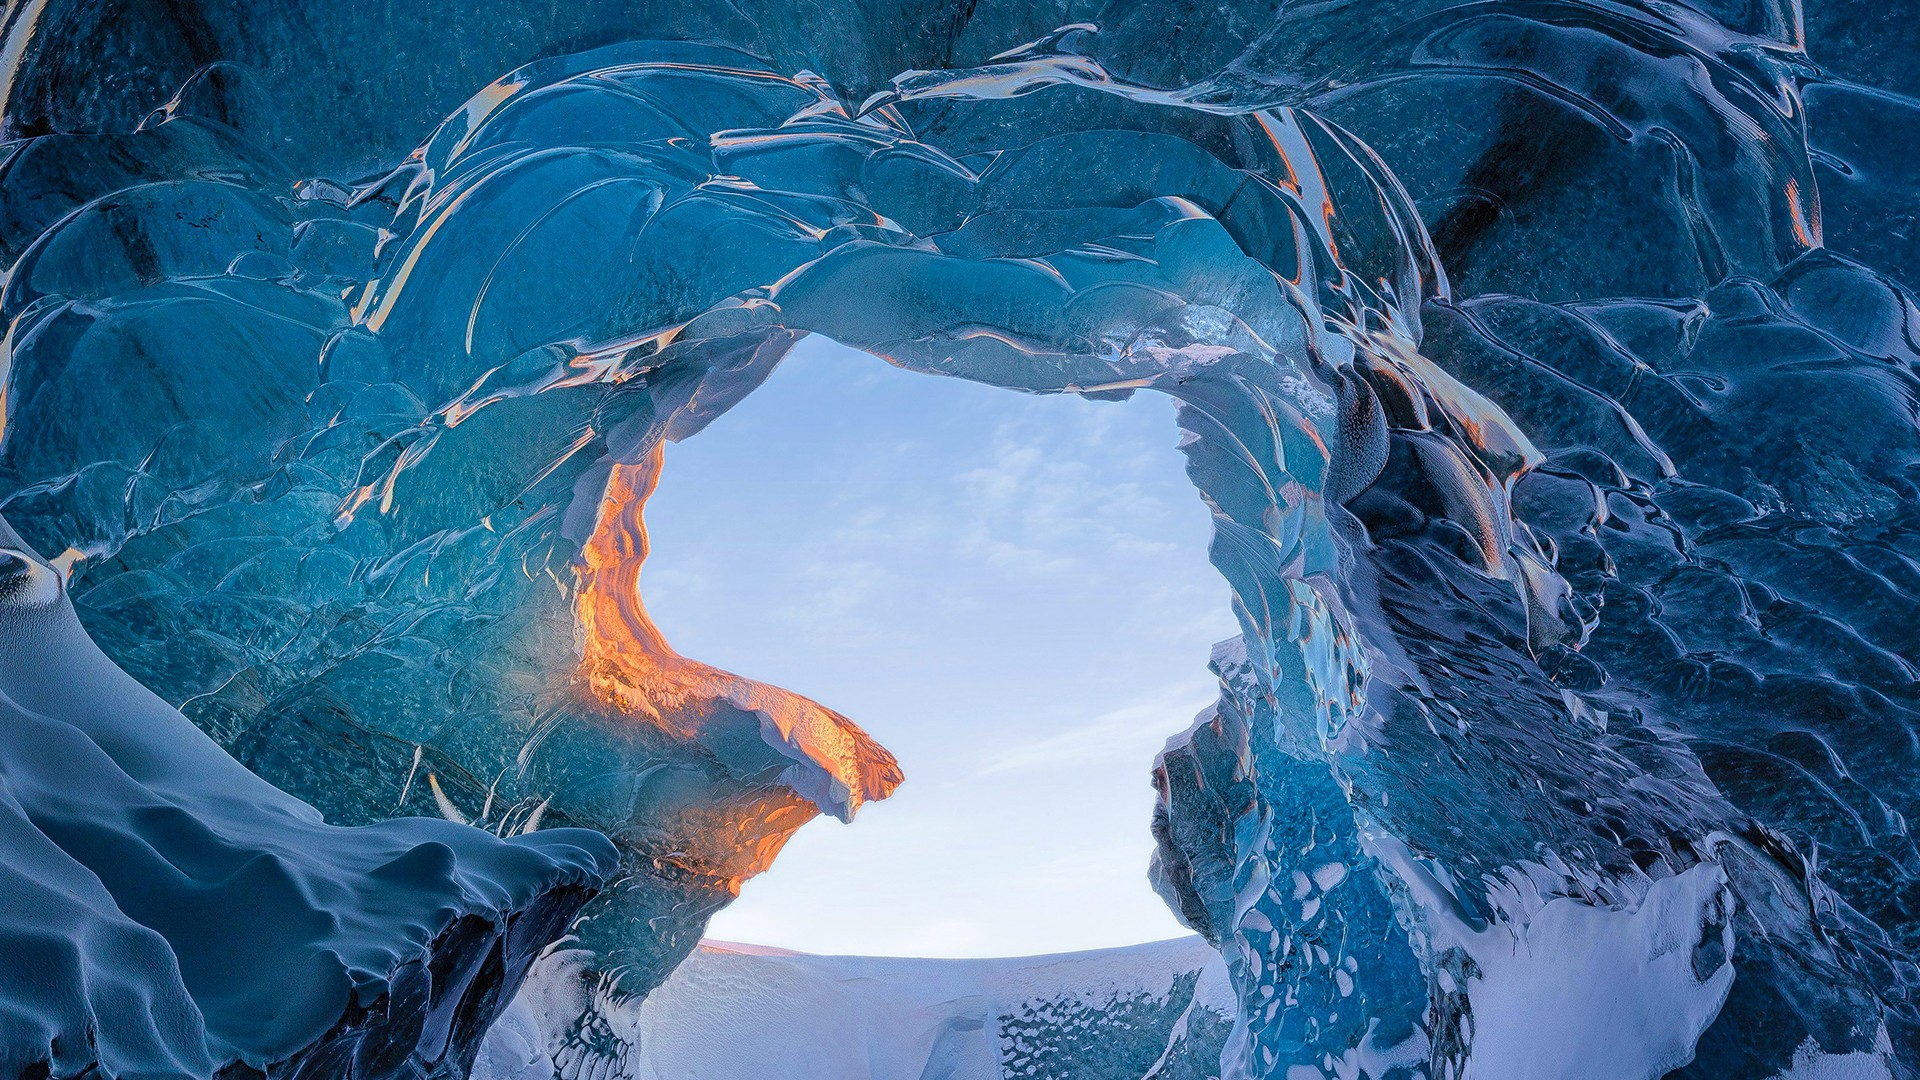 Cute Wallpapers For Iphone 4 Skaftafell Ice Cave Iceland Wallpapers Hd Wallpapers